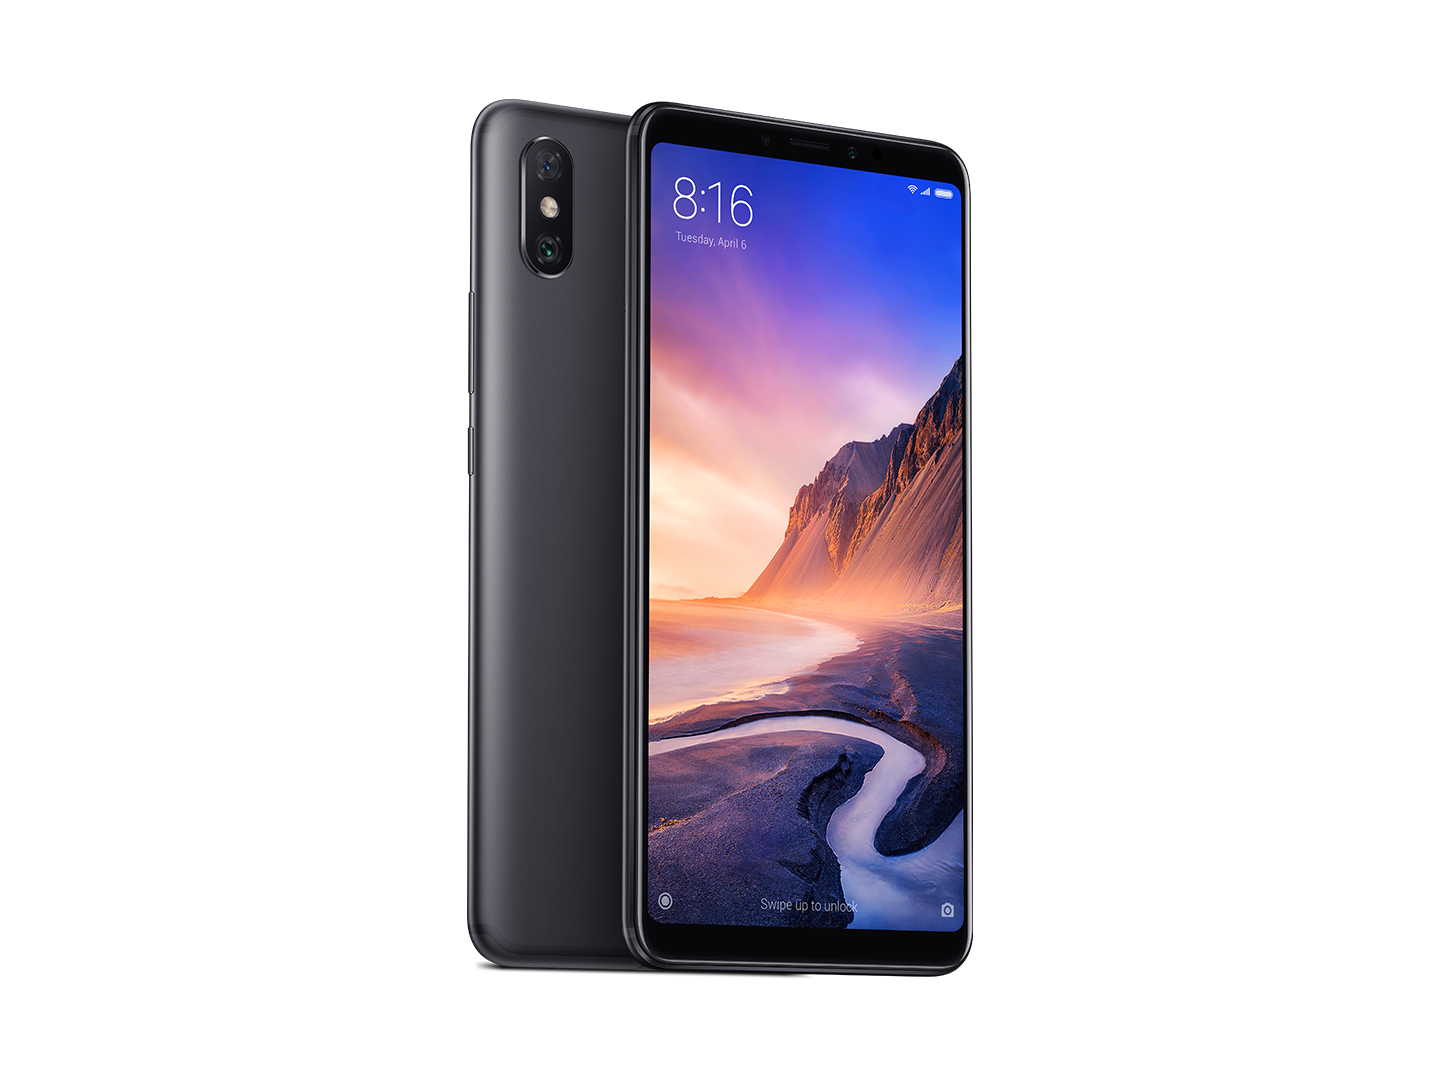 le xiaomi mi max 3 arrive en france moins de 300 euros. Black Bedroom Furniture Sets. Home Design Ideas